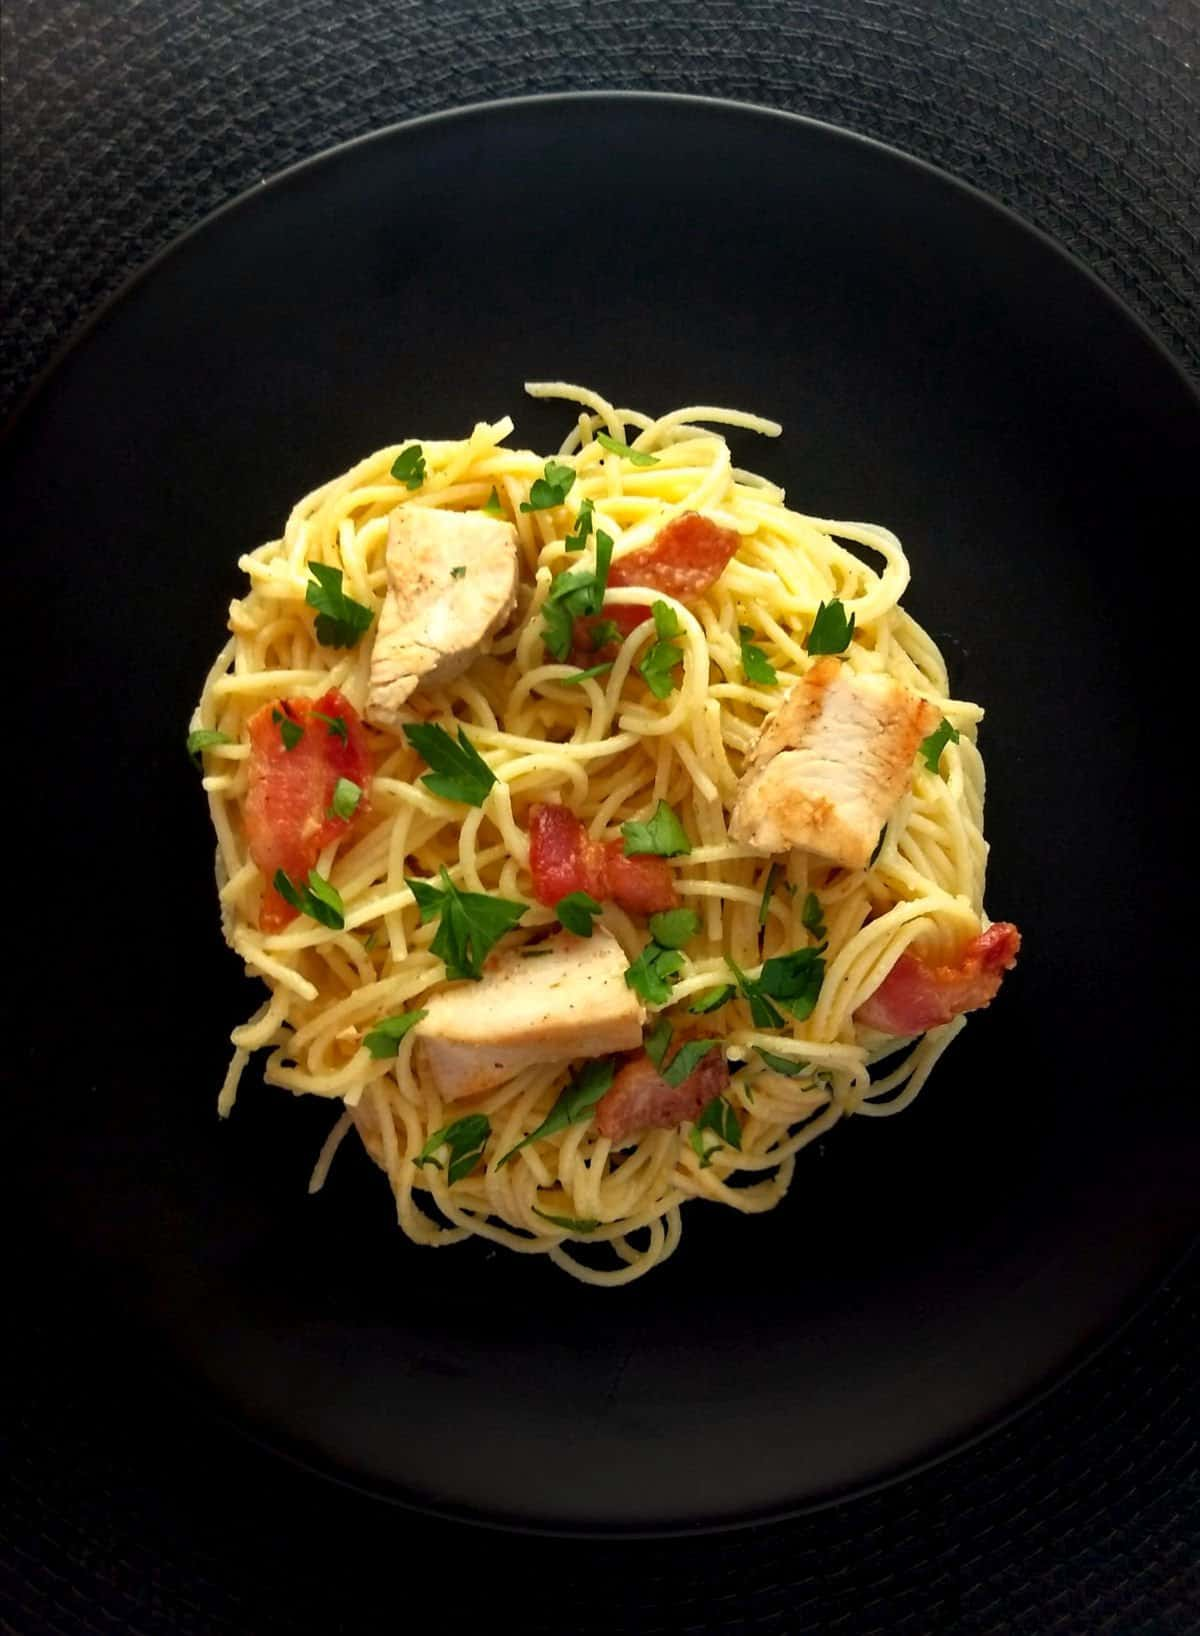 Spaghetti alla Carbonara with chicken